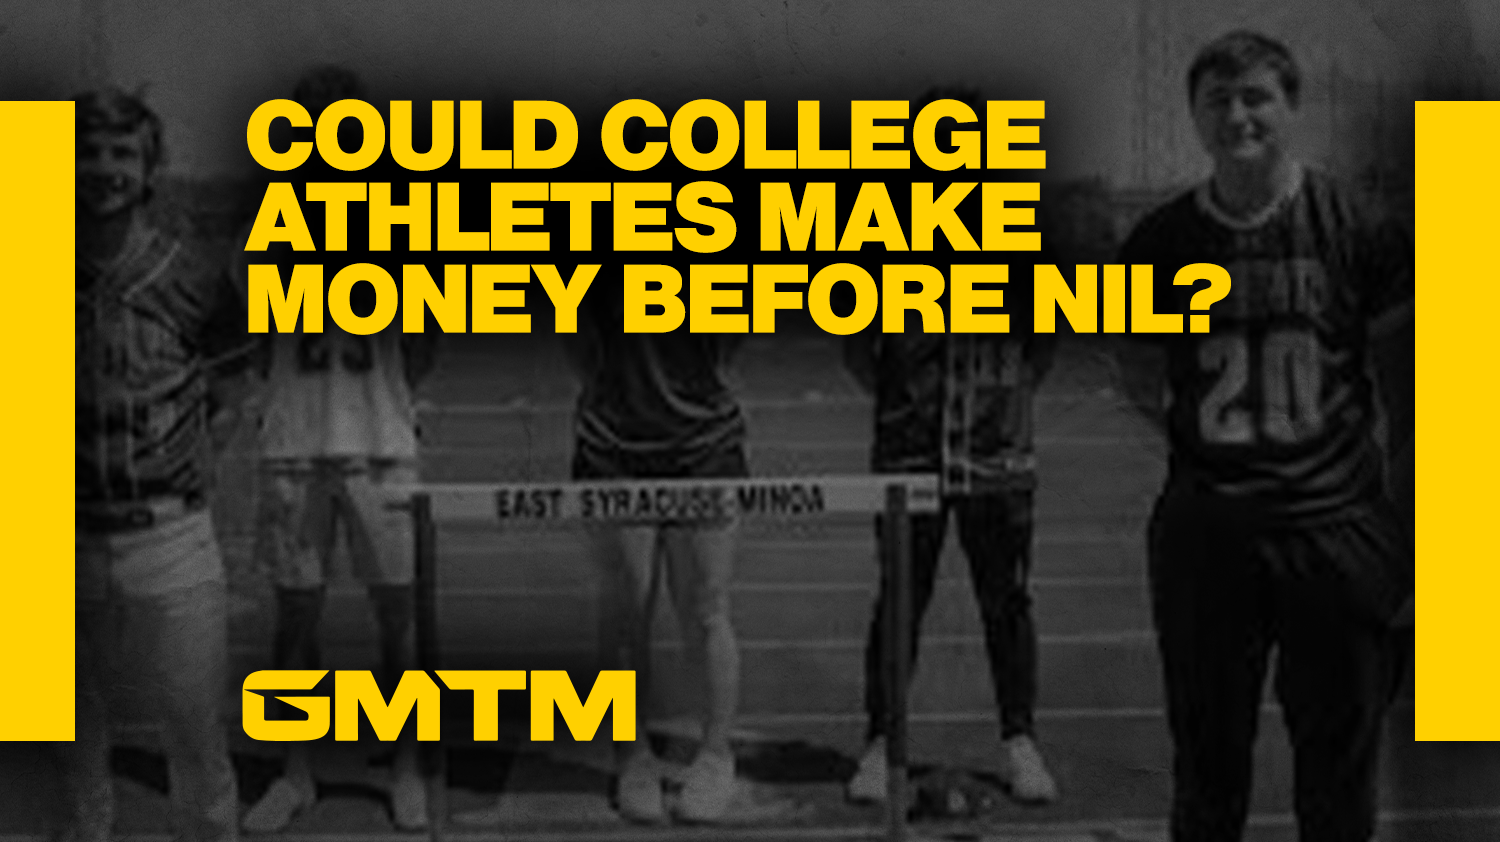 Could College Athletes Make Money Before NIL?